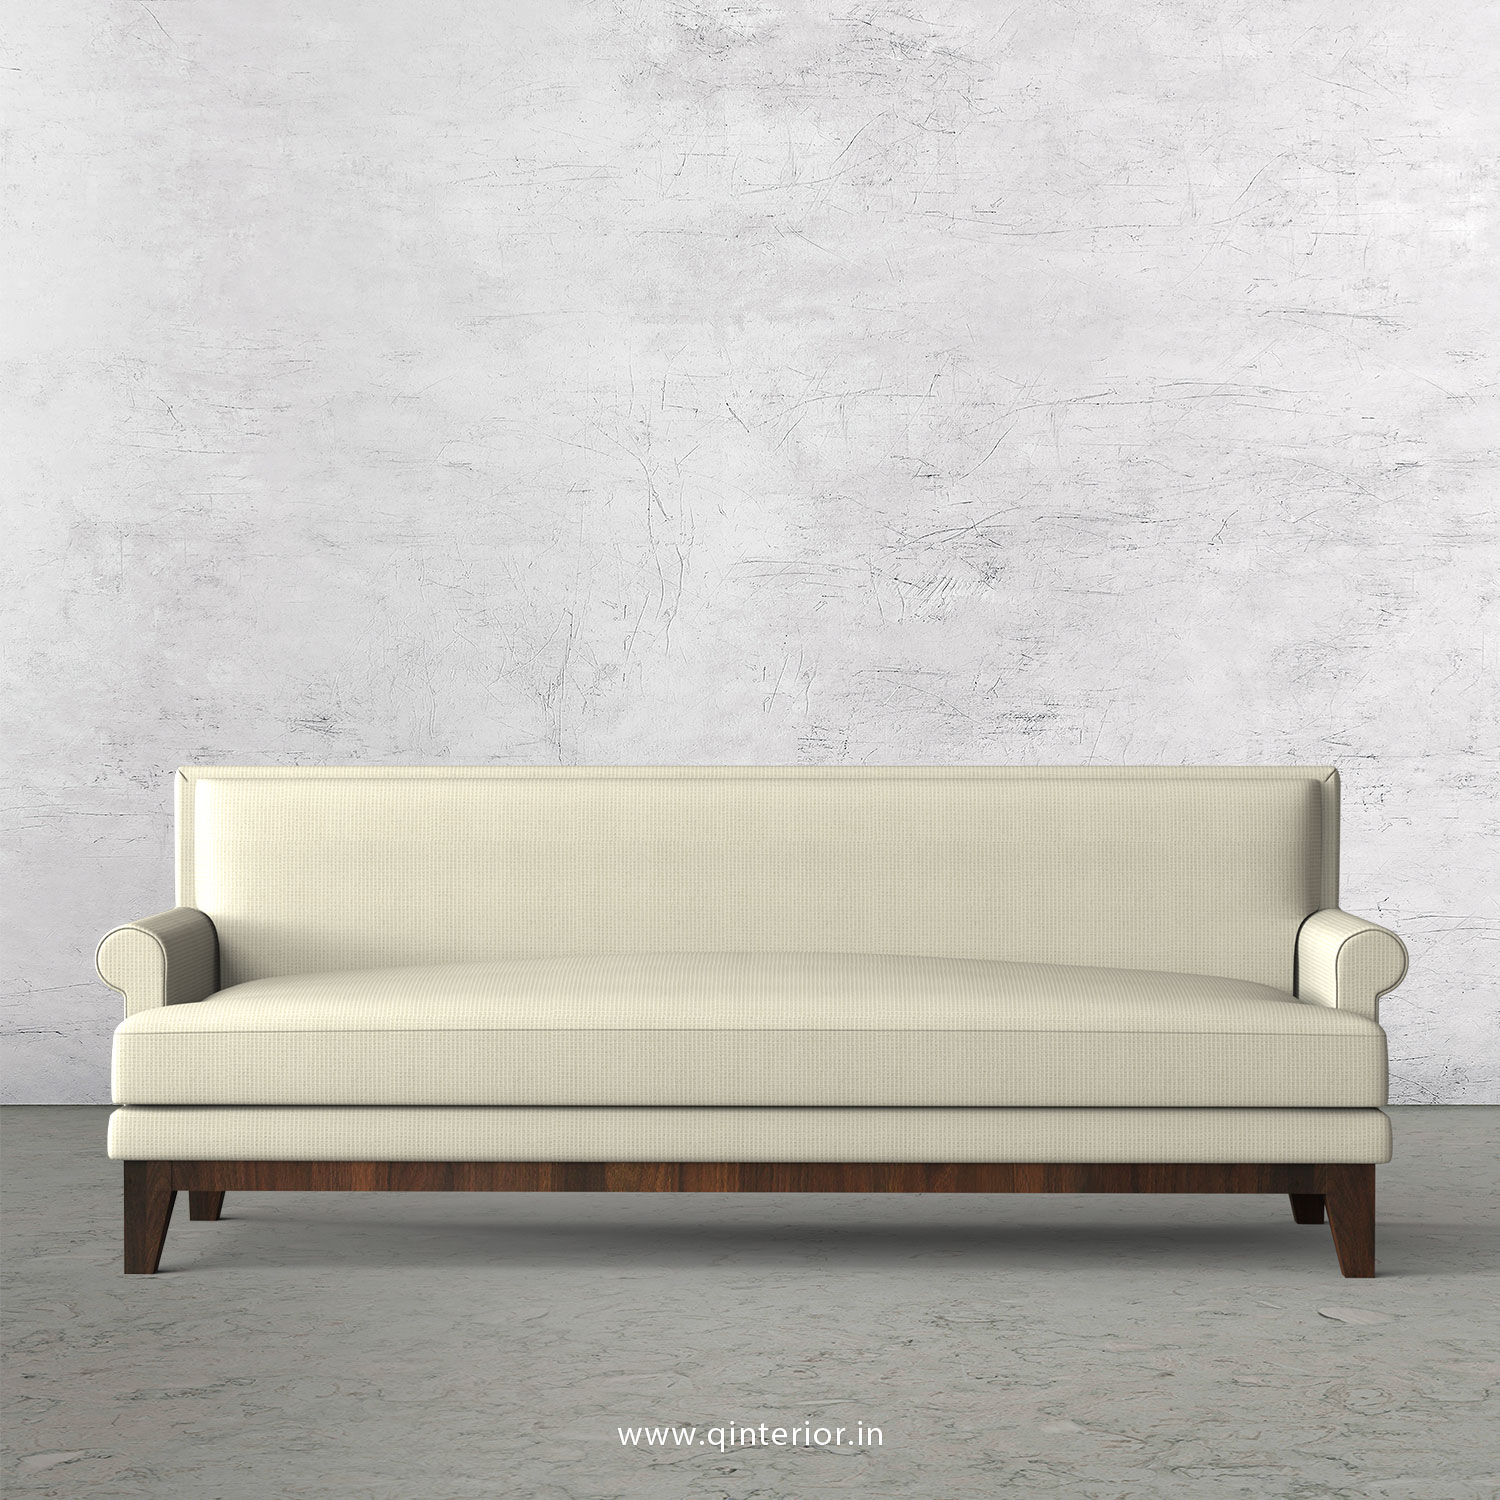 Aviana 3 Seater Sofa in Marvello - SFA001 MV07